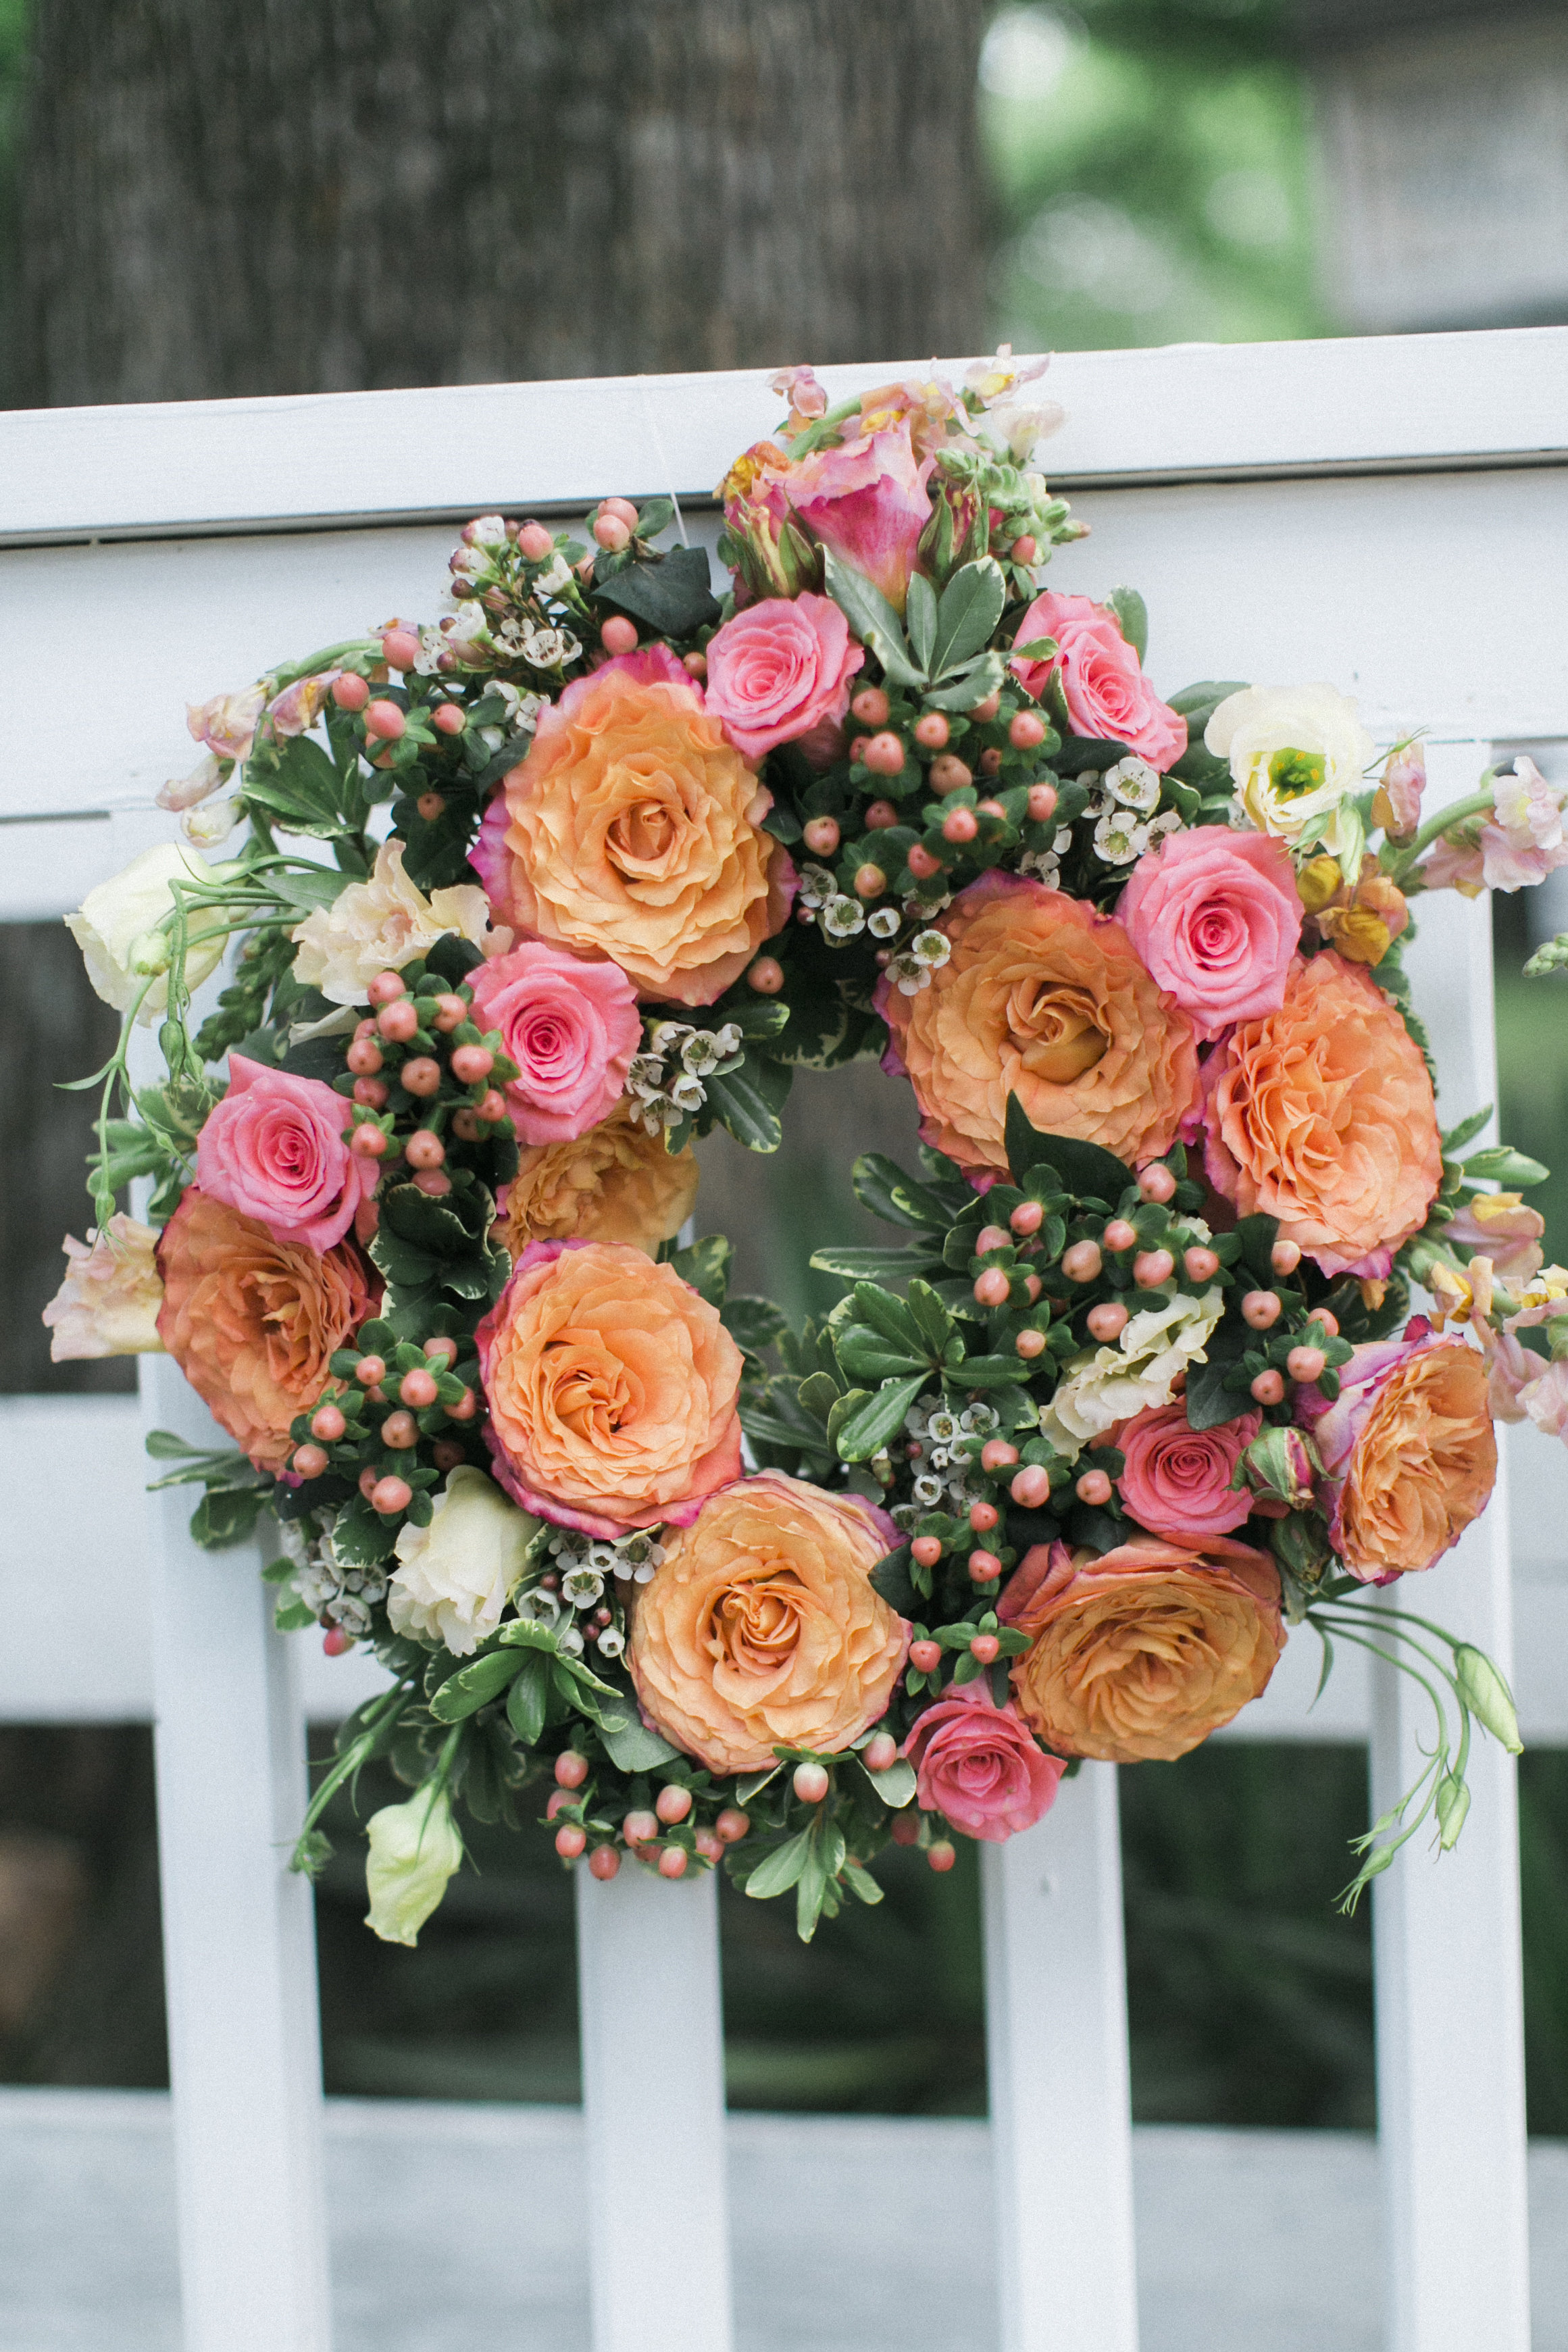 floral wreath wedding flowers tuckahoe plantation richmond virginia wedding florist